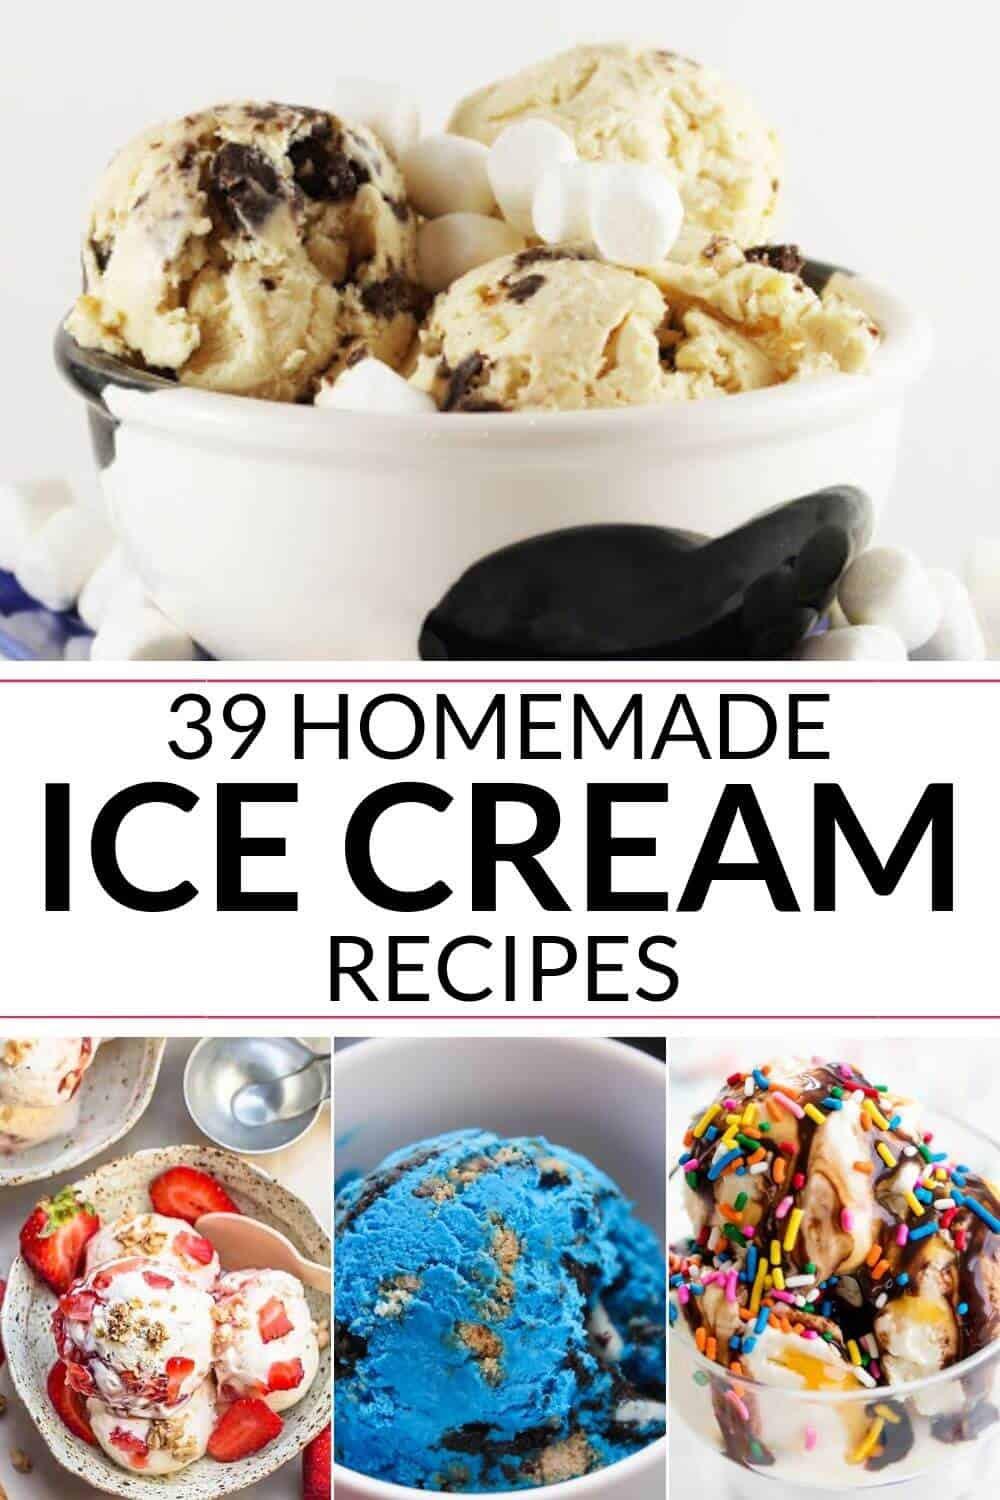 Collection of homemade ice cream